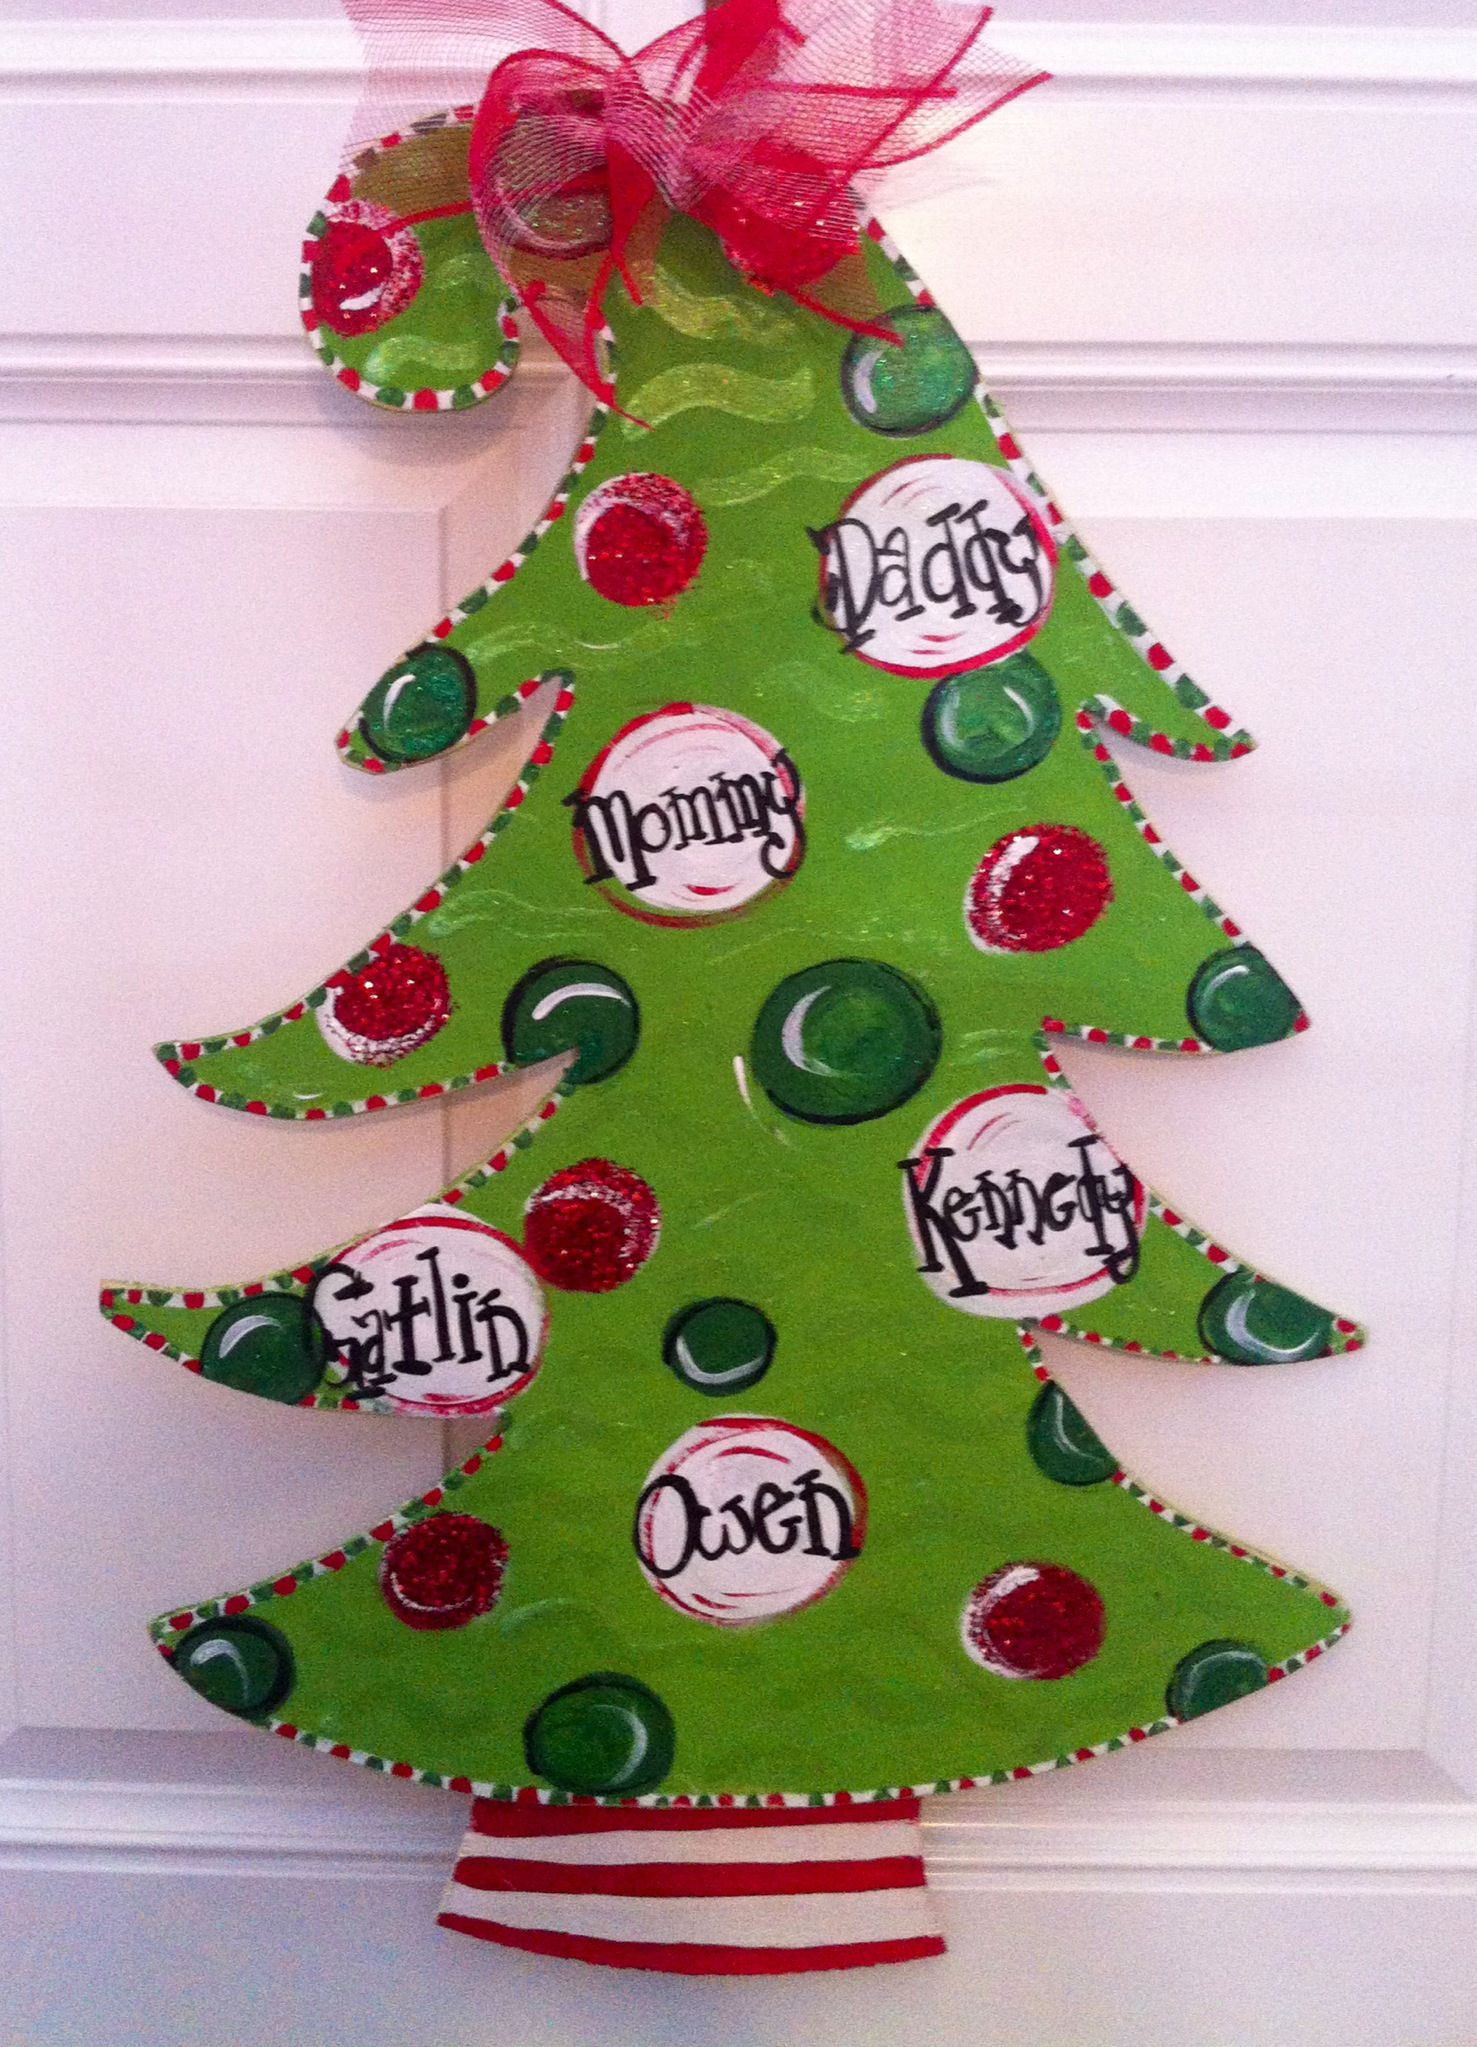 Personalized Christmas Decor.Christmas Door Decor By Southern Charm Decor Personalized